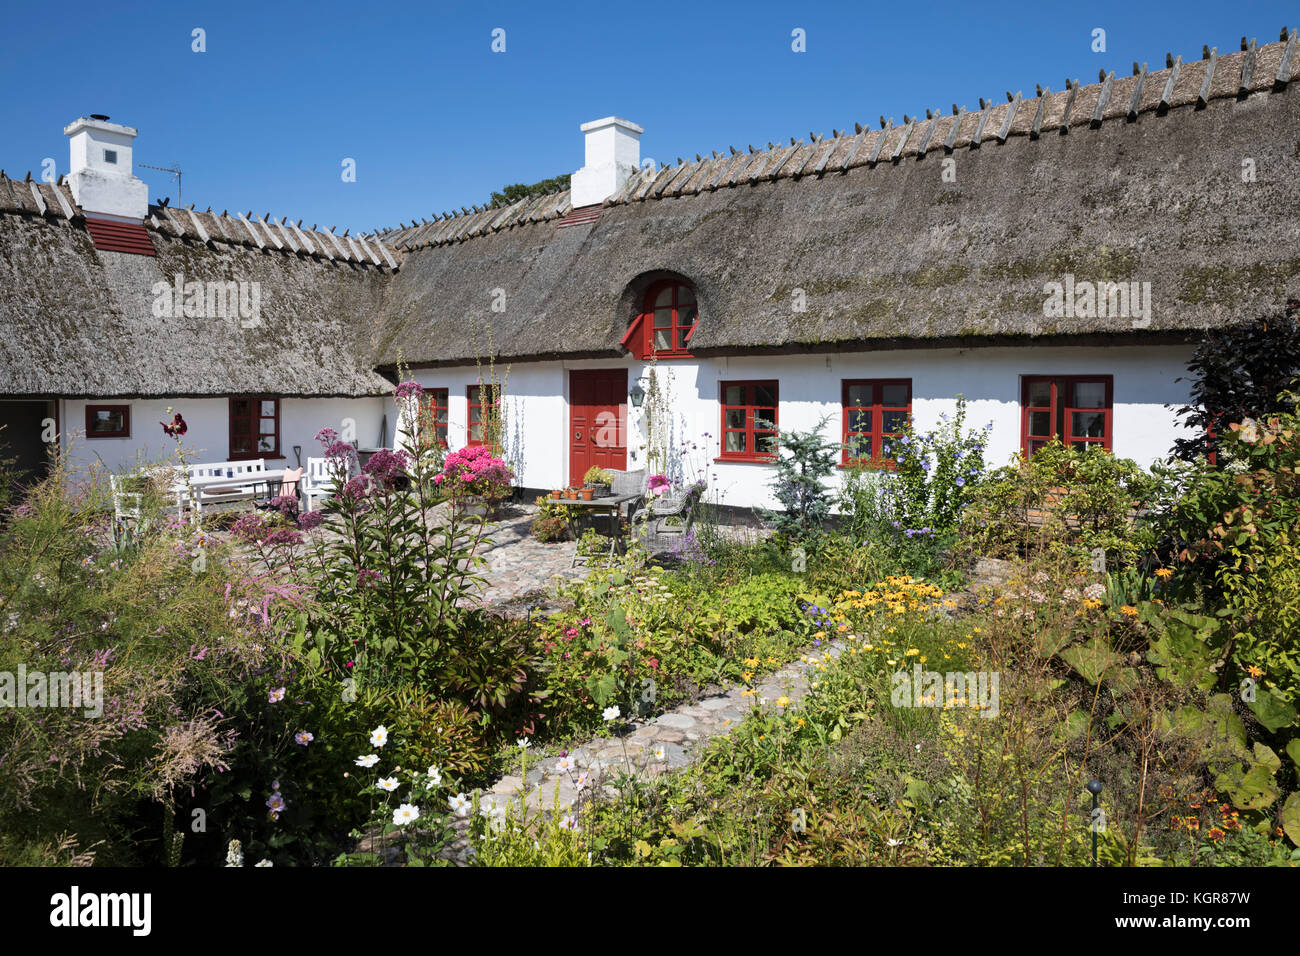 Traditional white painted thatched Danish cottage and garden, Gilleleje, Kattegat Coast, Zealand, Denmark, Europe - Stock Image